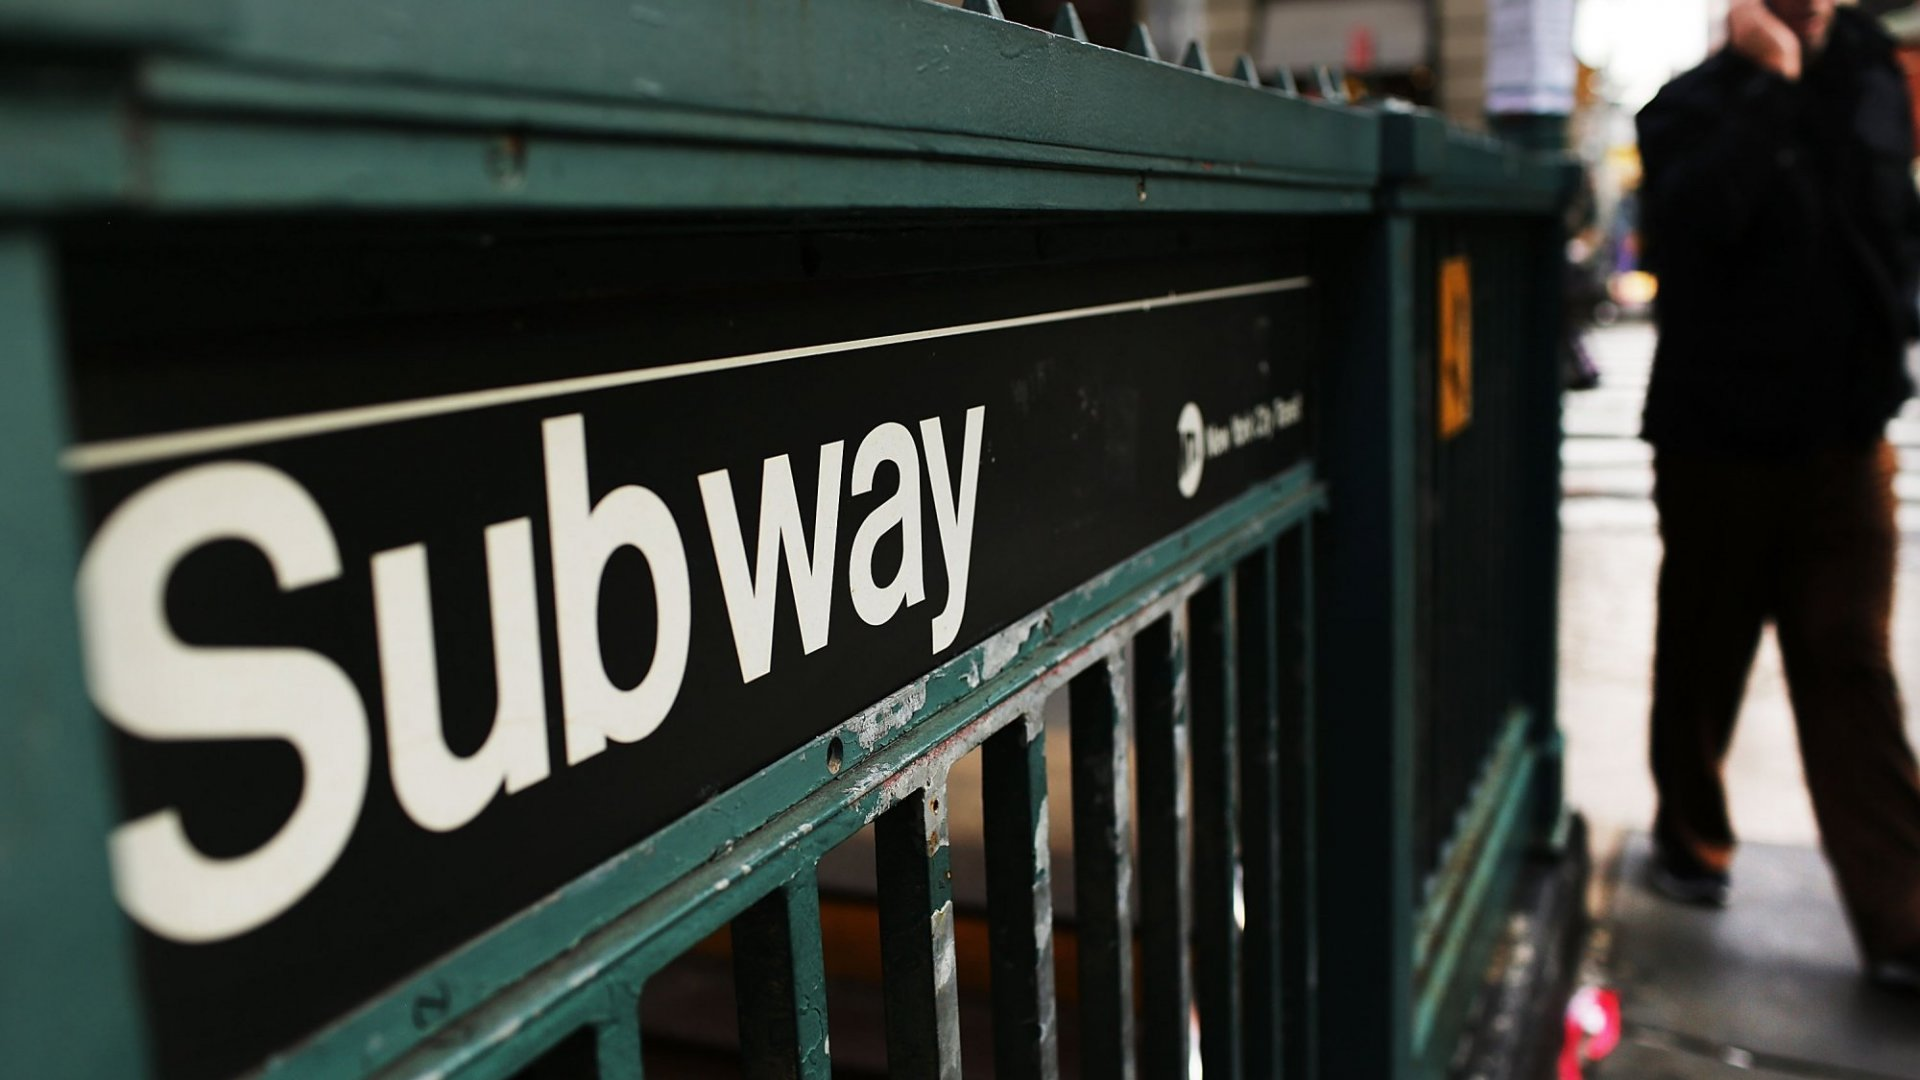 What Happens When You Put a NYC Subway Train Where it Doesn't Belong? A Remarkable Customer Experience